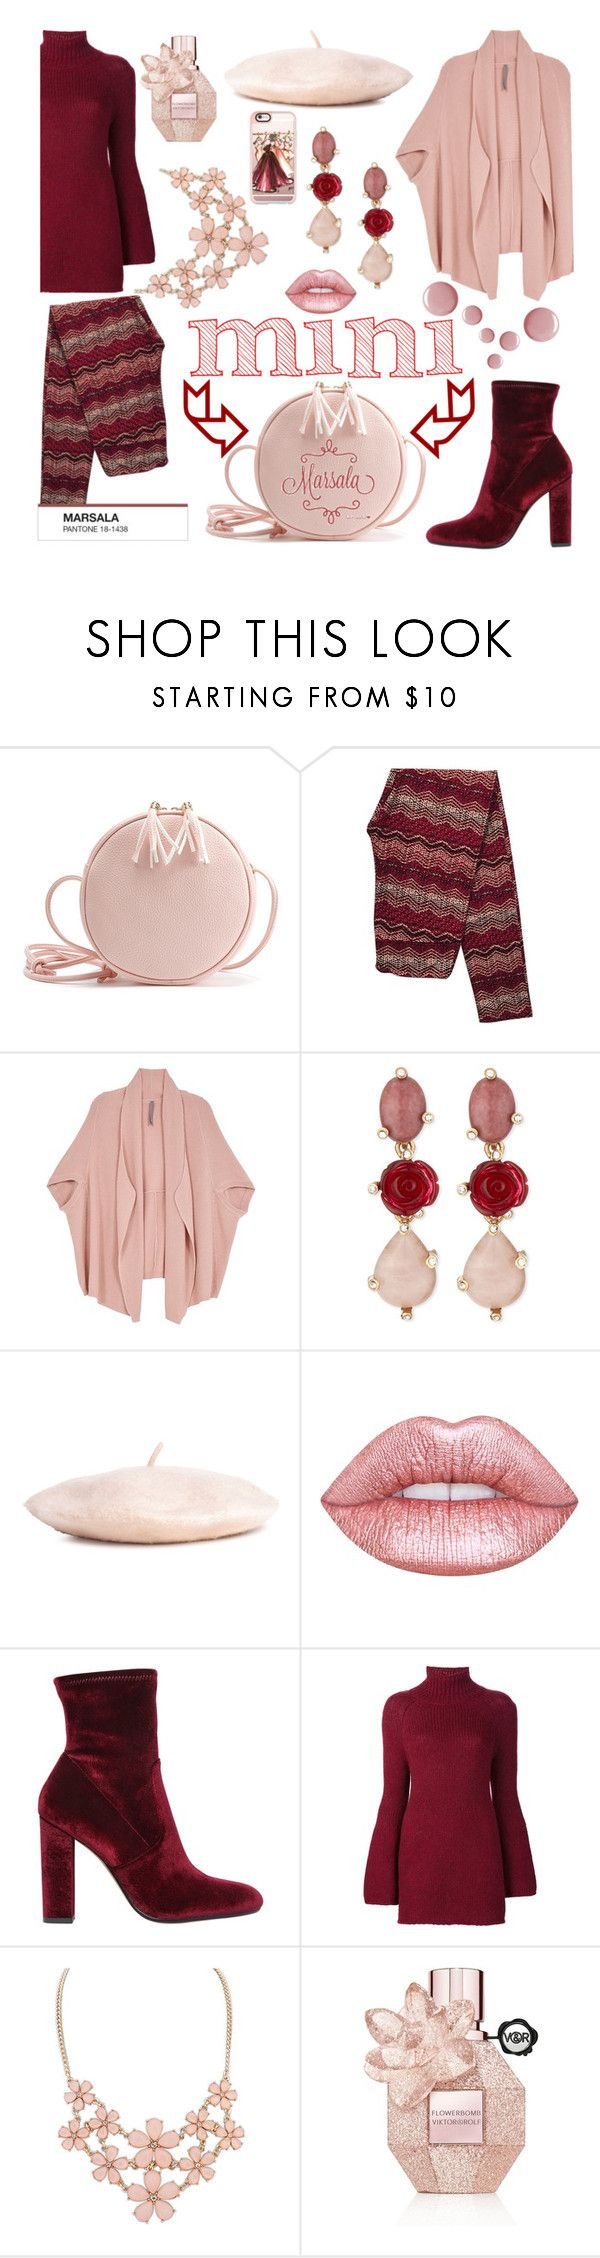 """Eeny Meeny Miny Moe, Catch A Mini Bag Anyway You Know & Never Let Go"" by sharee64 ❤ liked on Polyvore featuring Melissa McCarthy Seven7, Oscar de la Renta, Lime Crime, Steve Madden, Rosetta Getty, Viktor & Rolf, Casetify and plus size clothing"